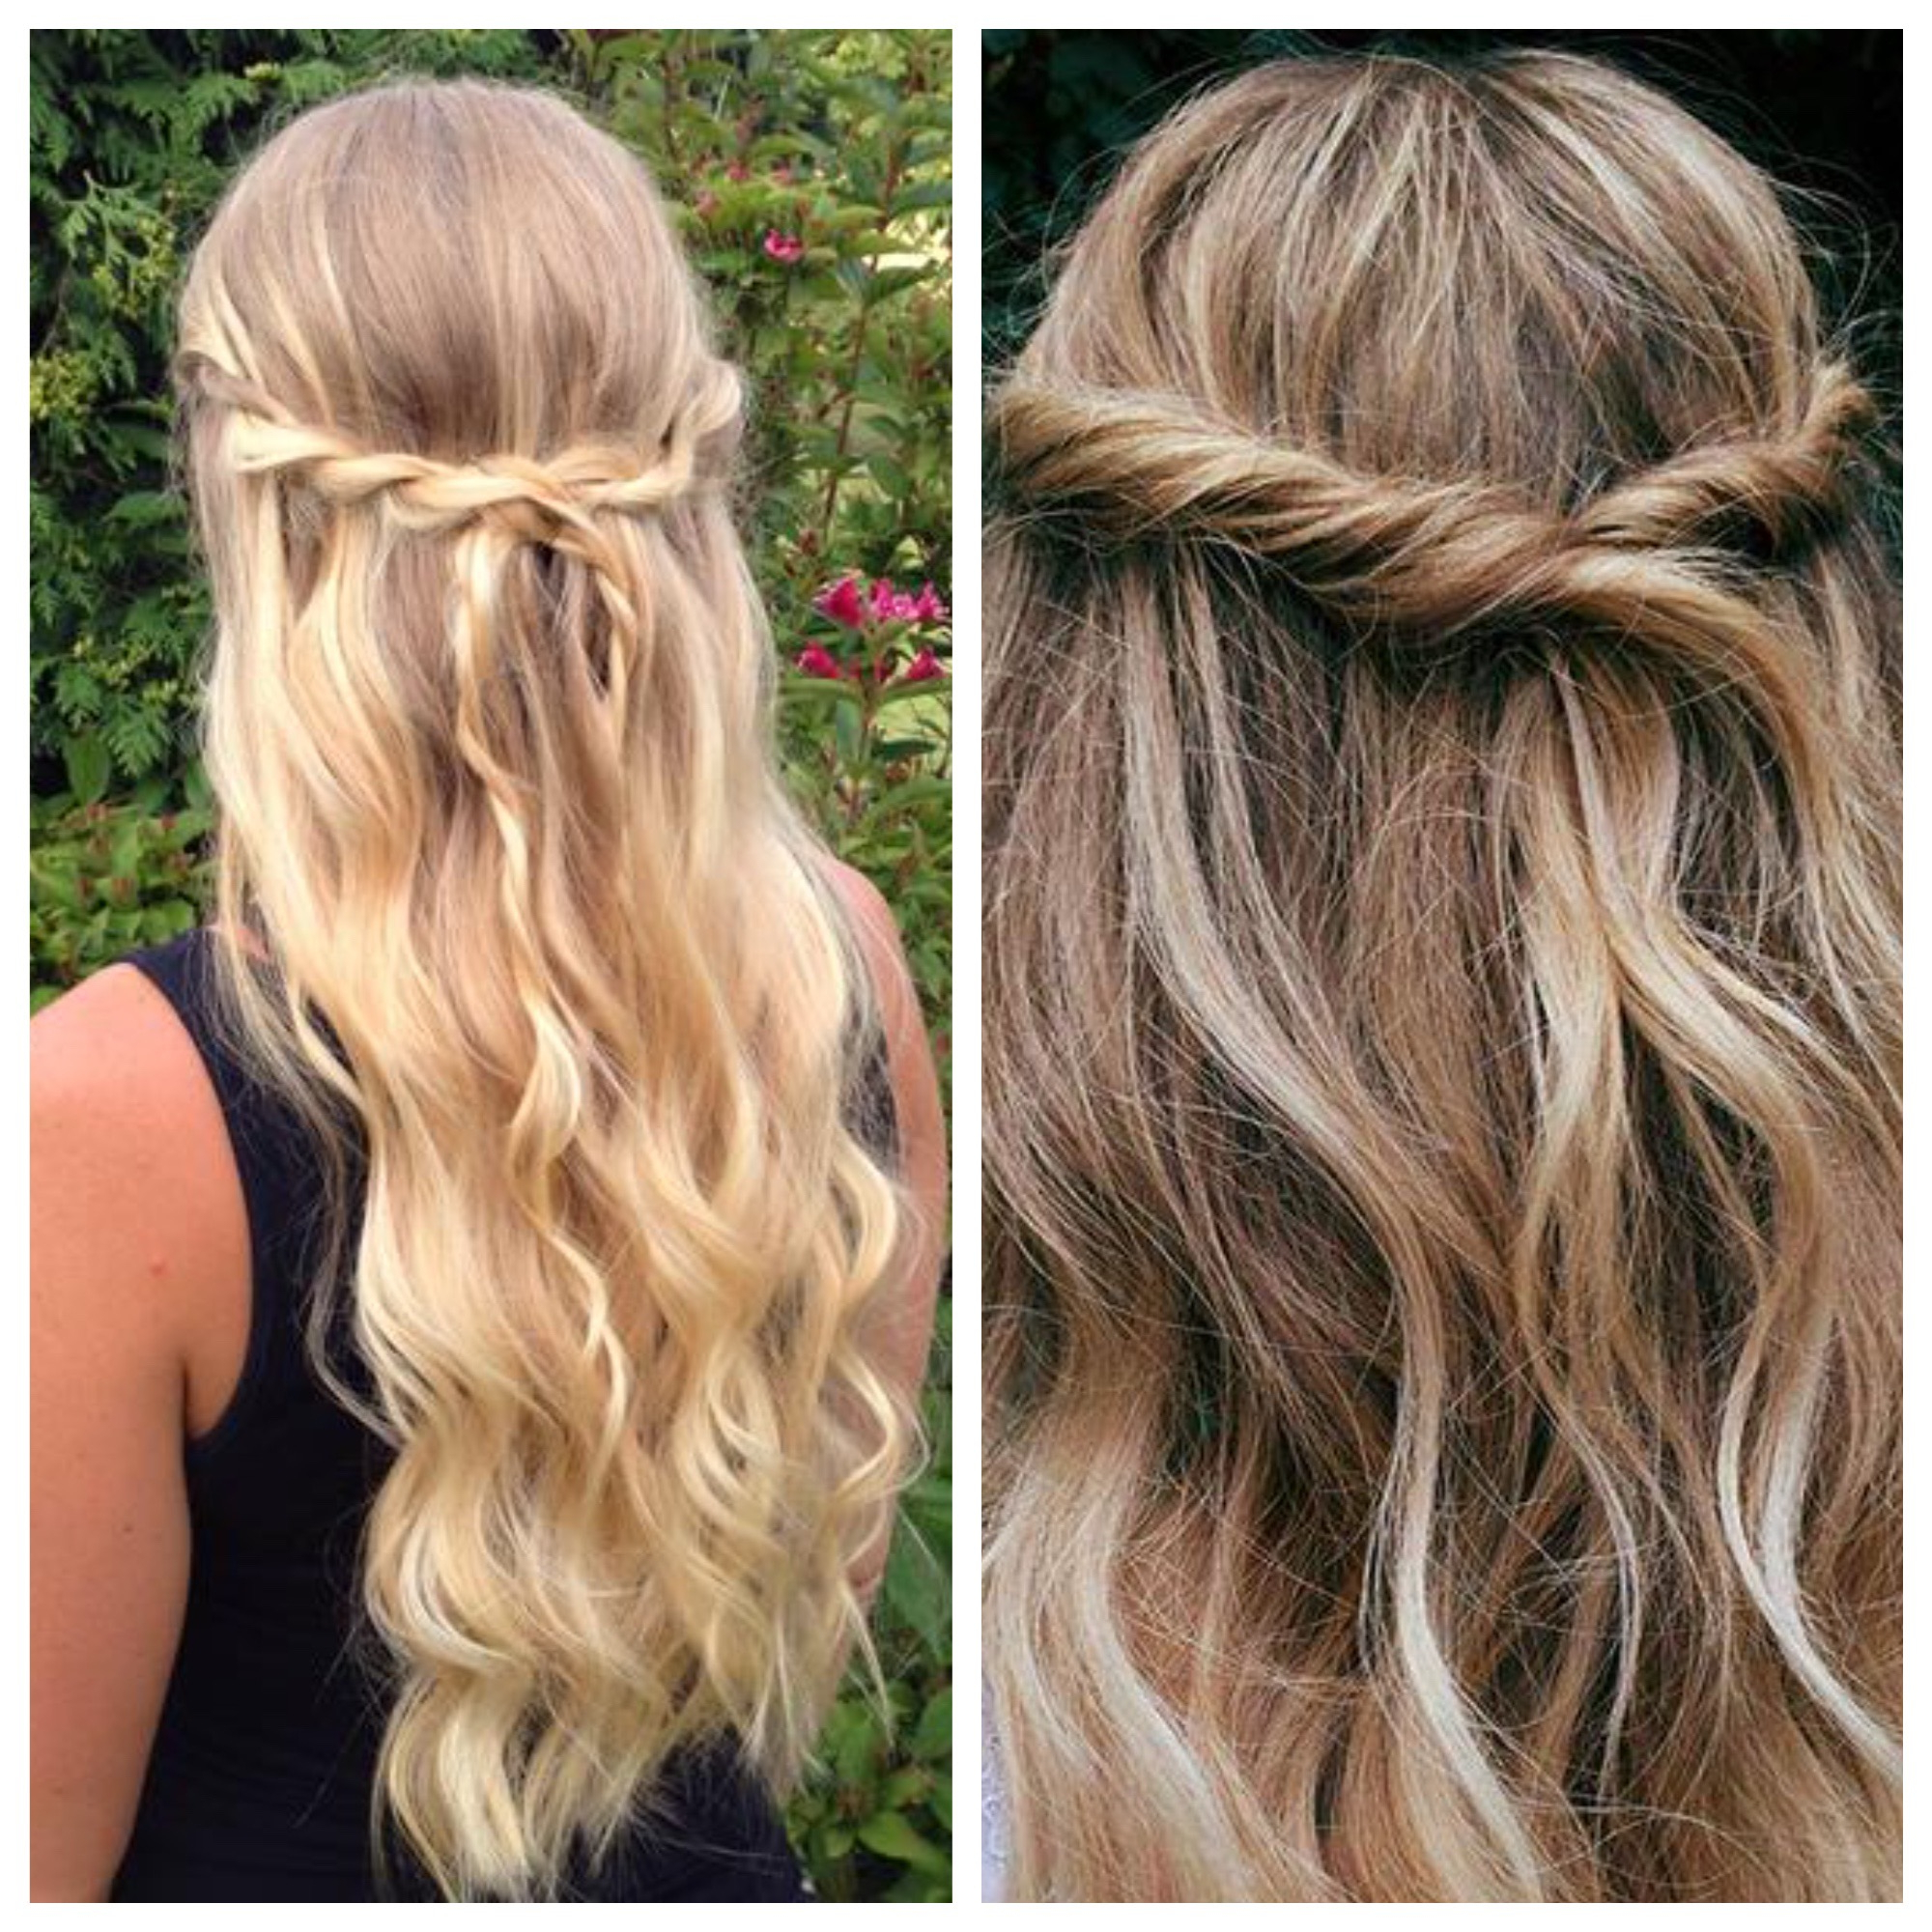 Newest Twisting Braided Prom Updos In Simple And Easy Half Up Hairstyles For Weddings – Hair World Magazine (View 13 of 20)